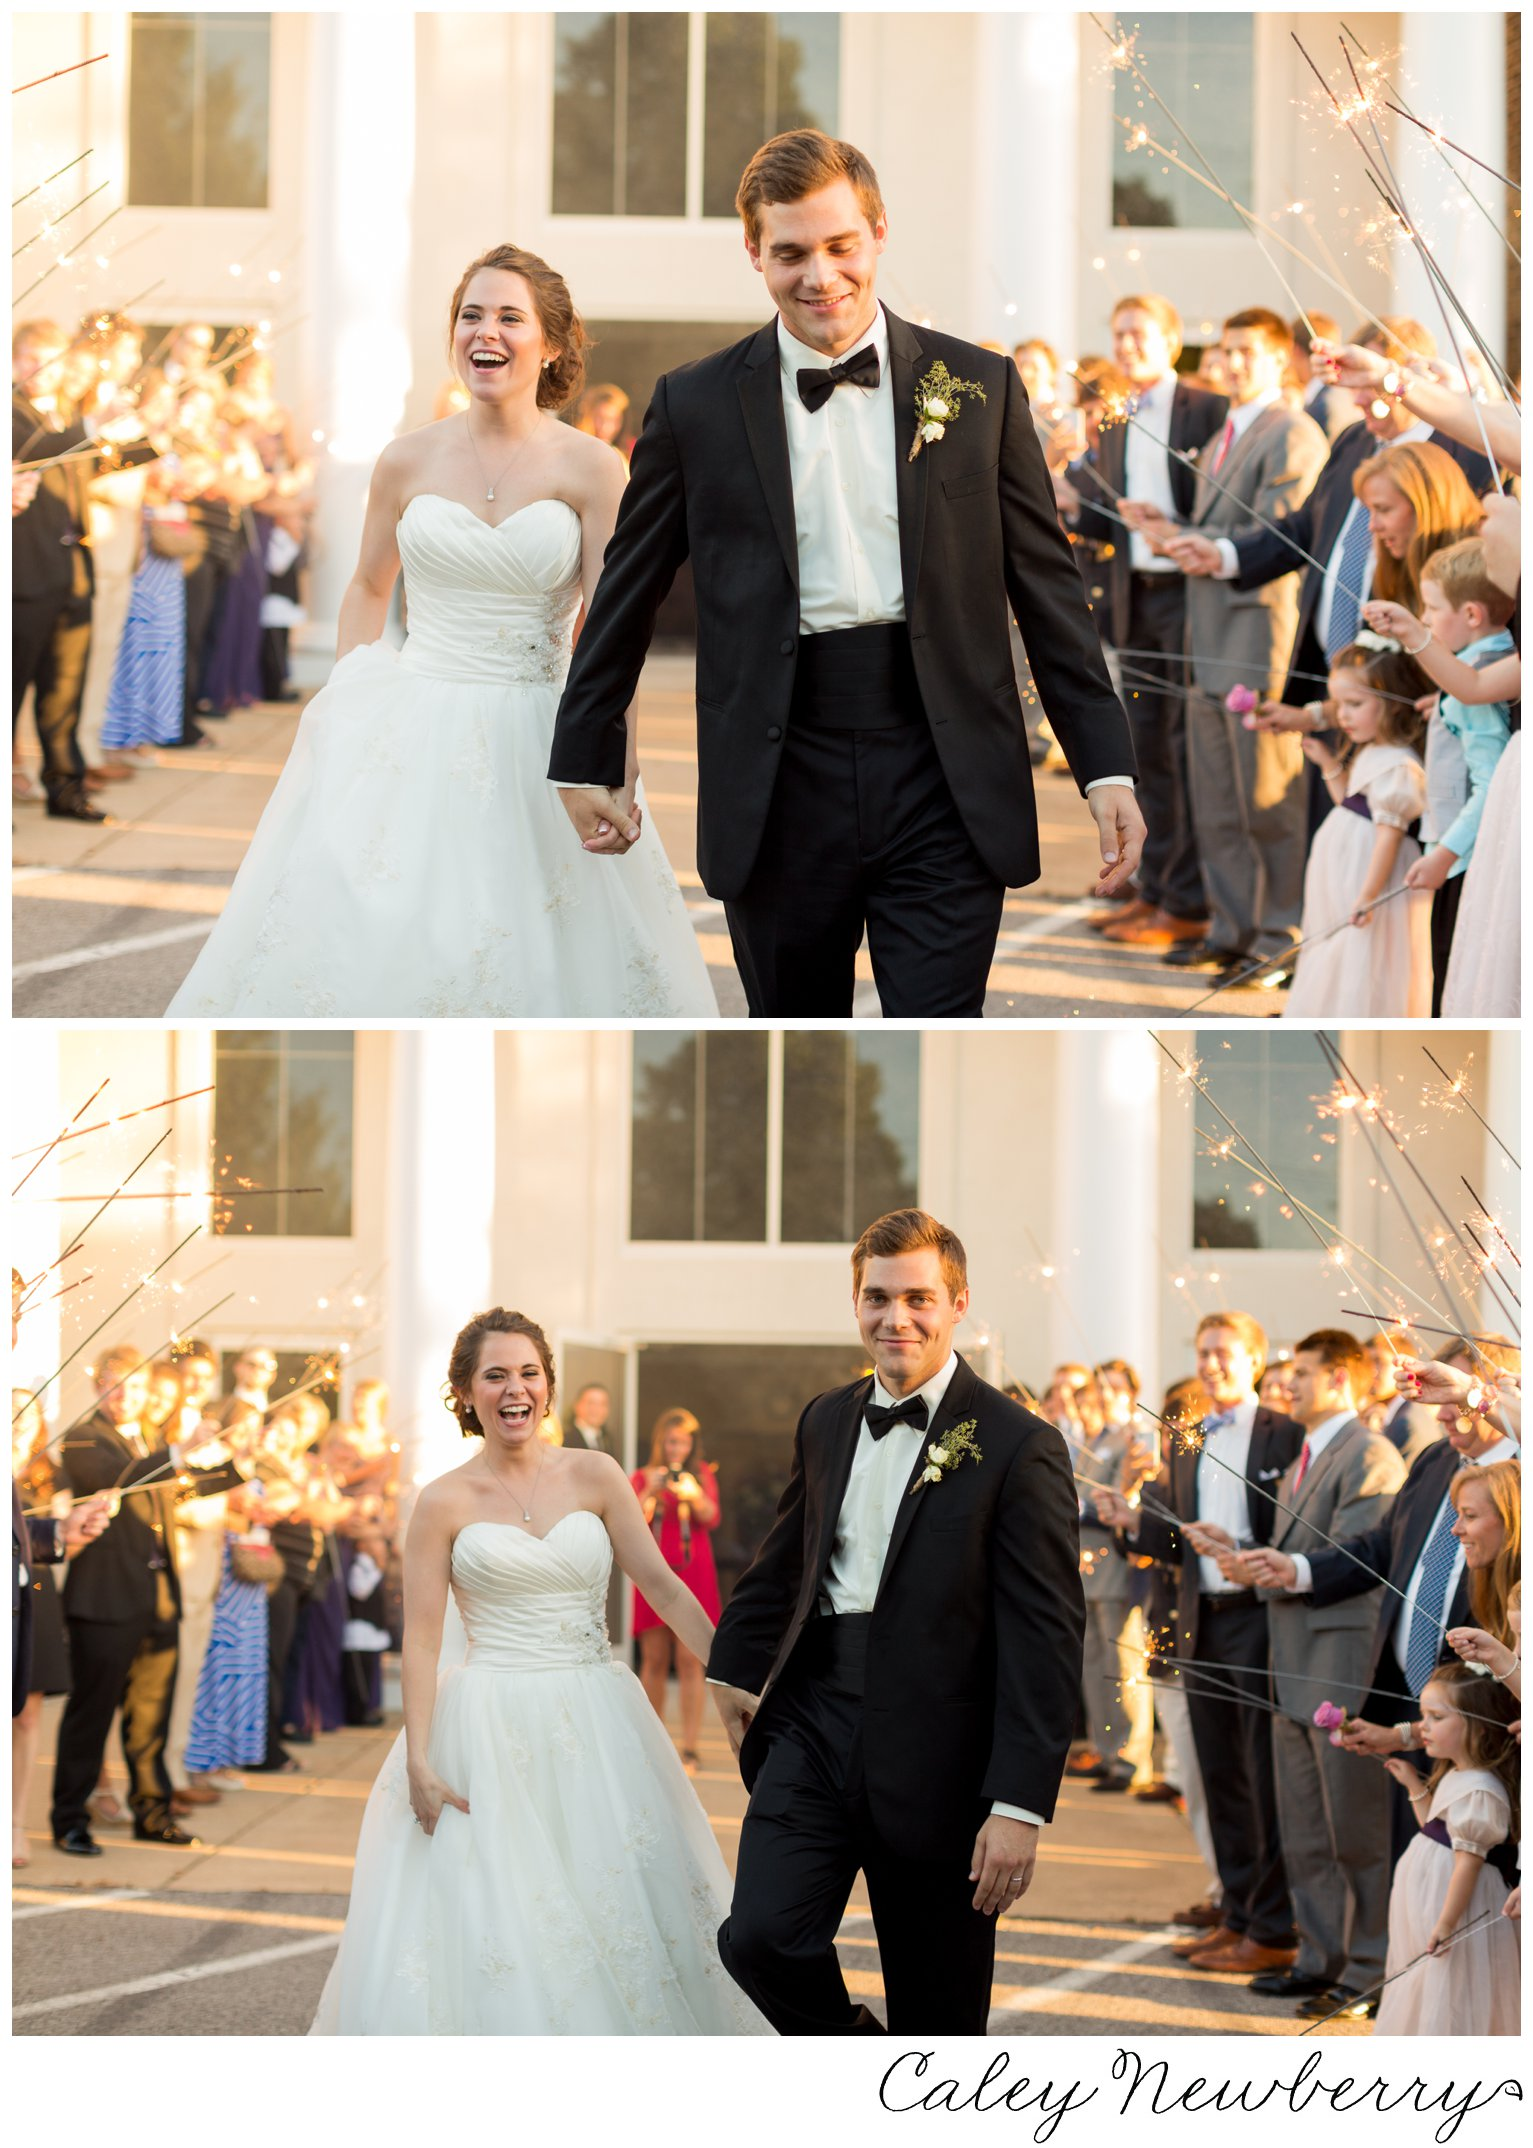 sparkler-wedding-exit-daylight.jpg